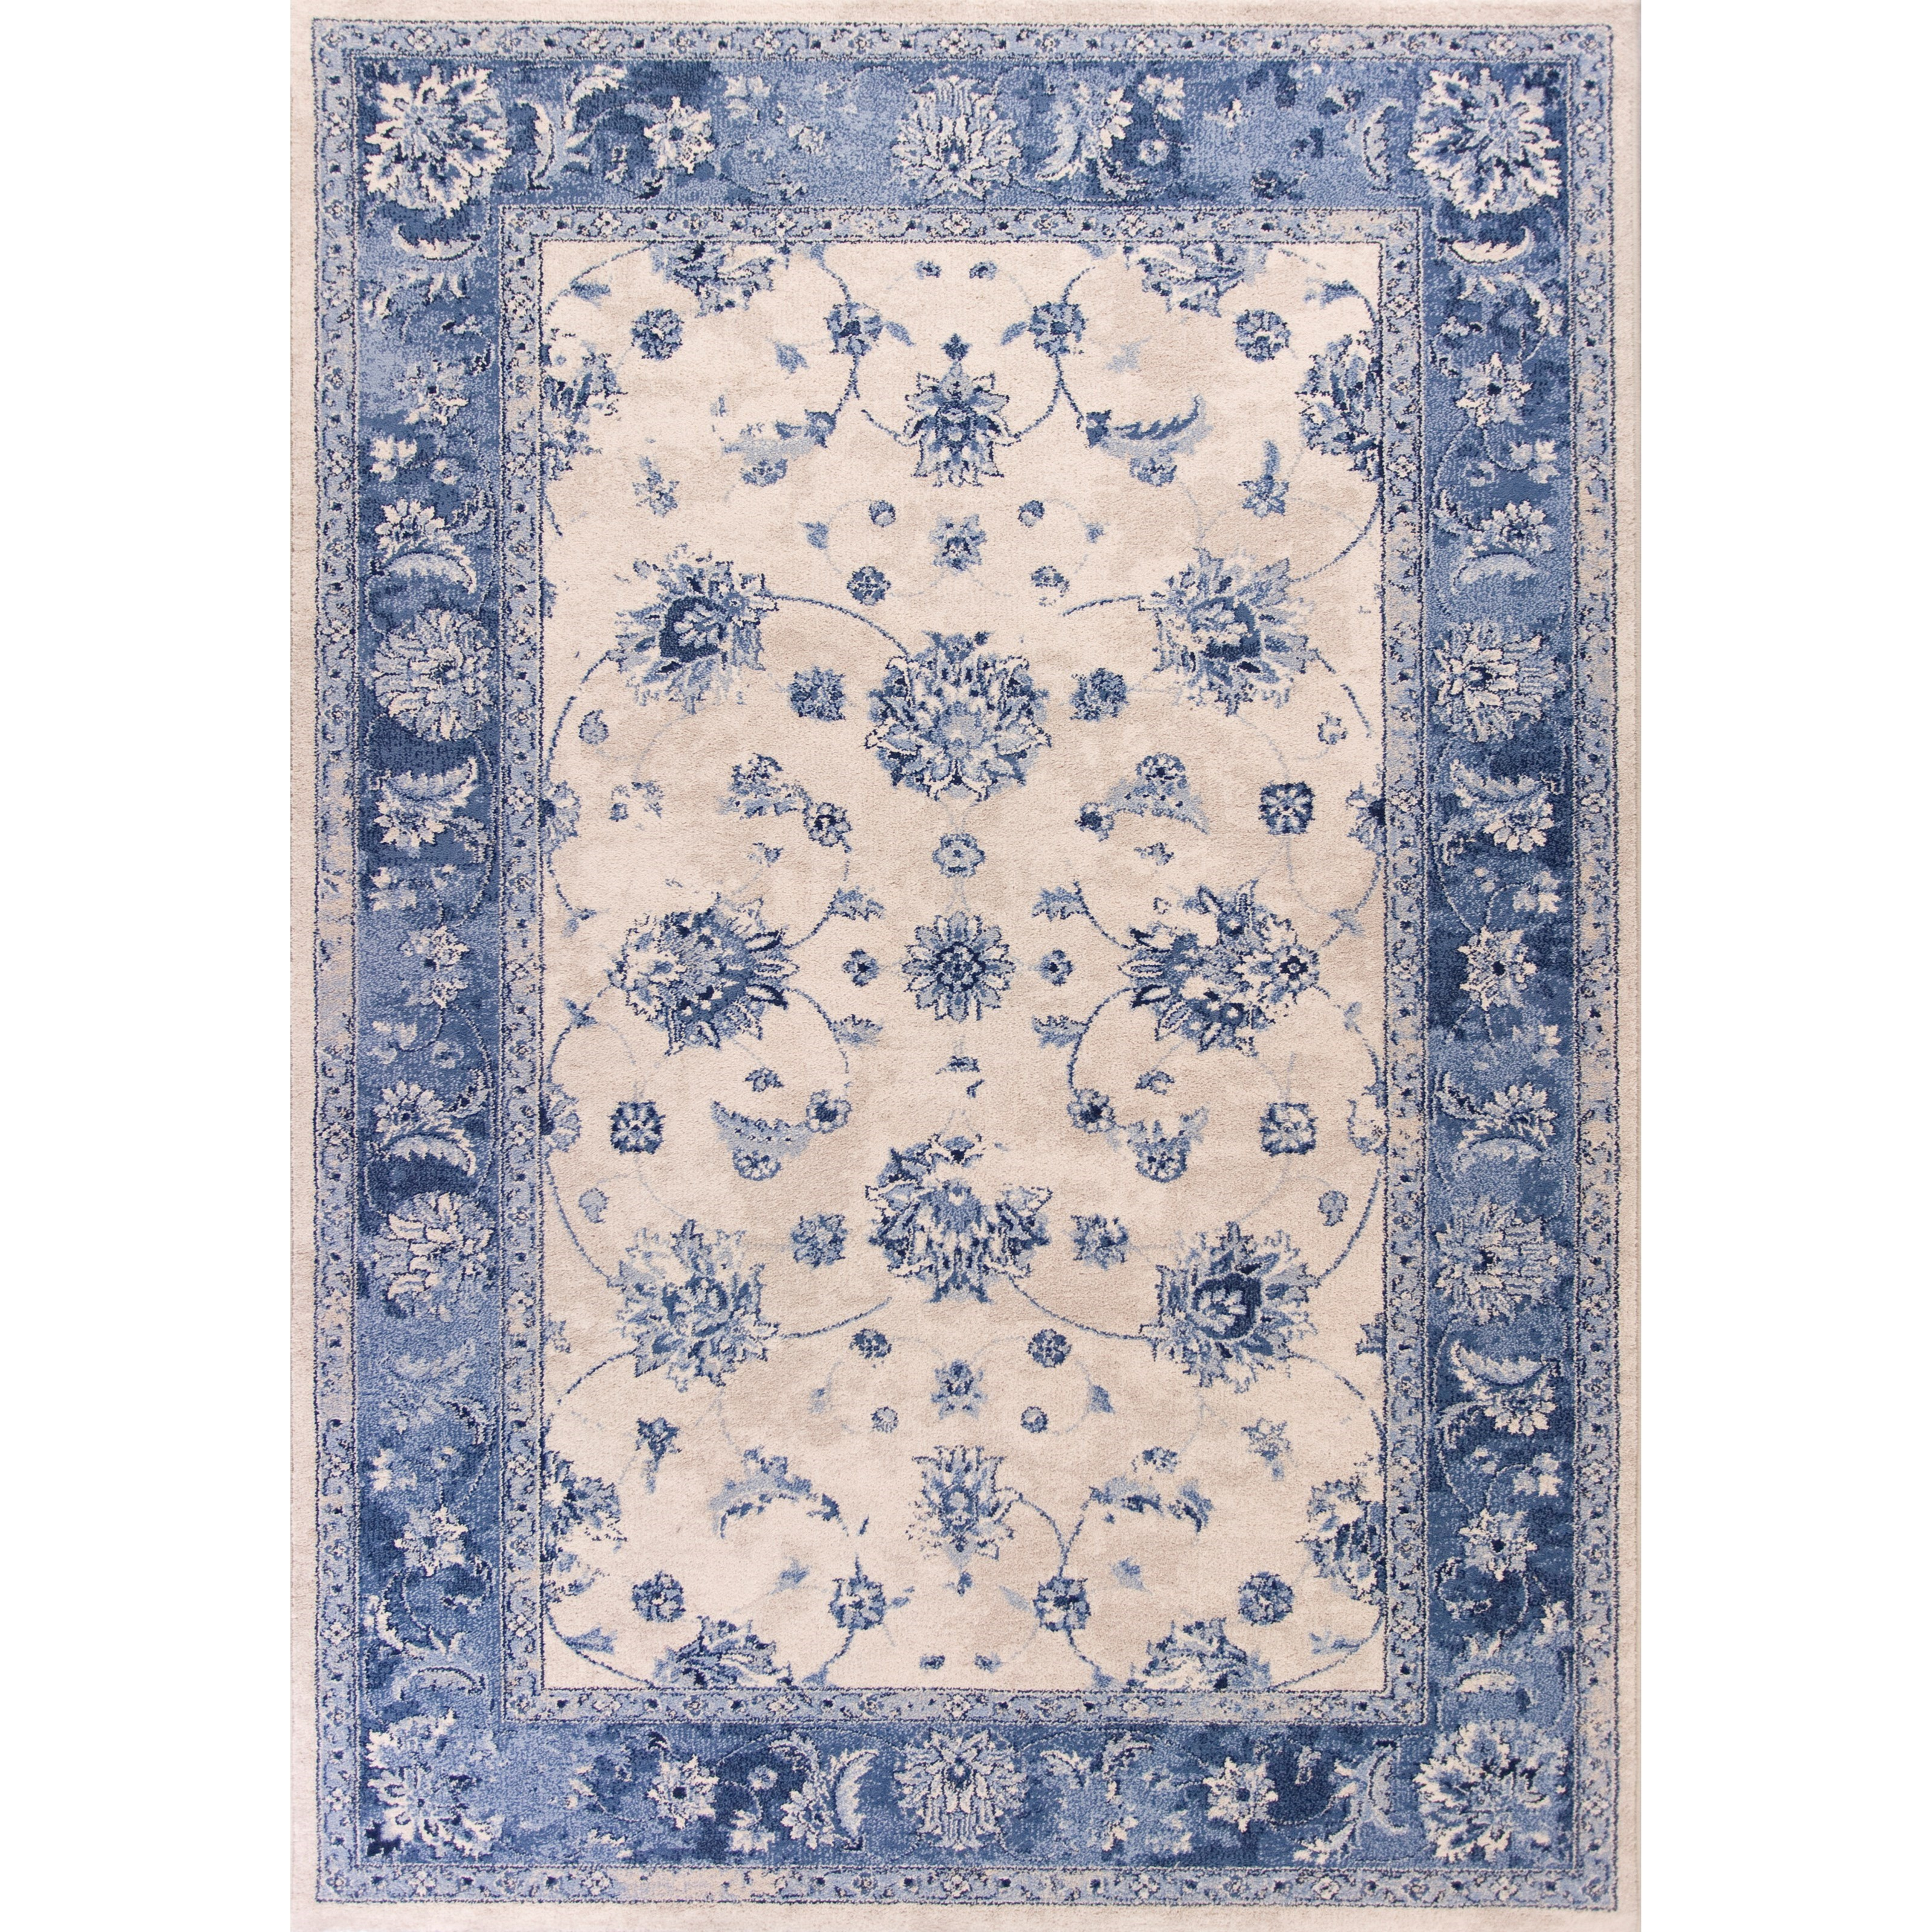 "Bob Mackie Home Vintage 2'2"" X 7'10"" Grey/Sky Blue Mahal Area Rug by Kas at Zak's Home"